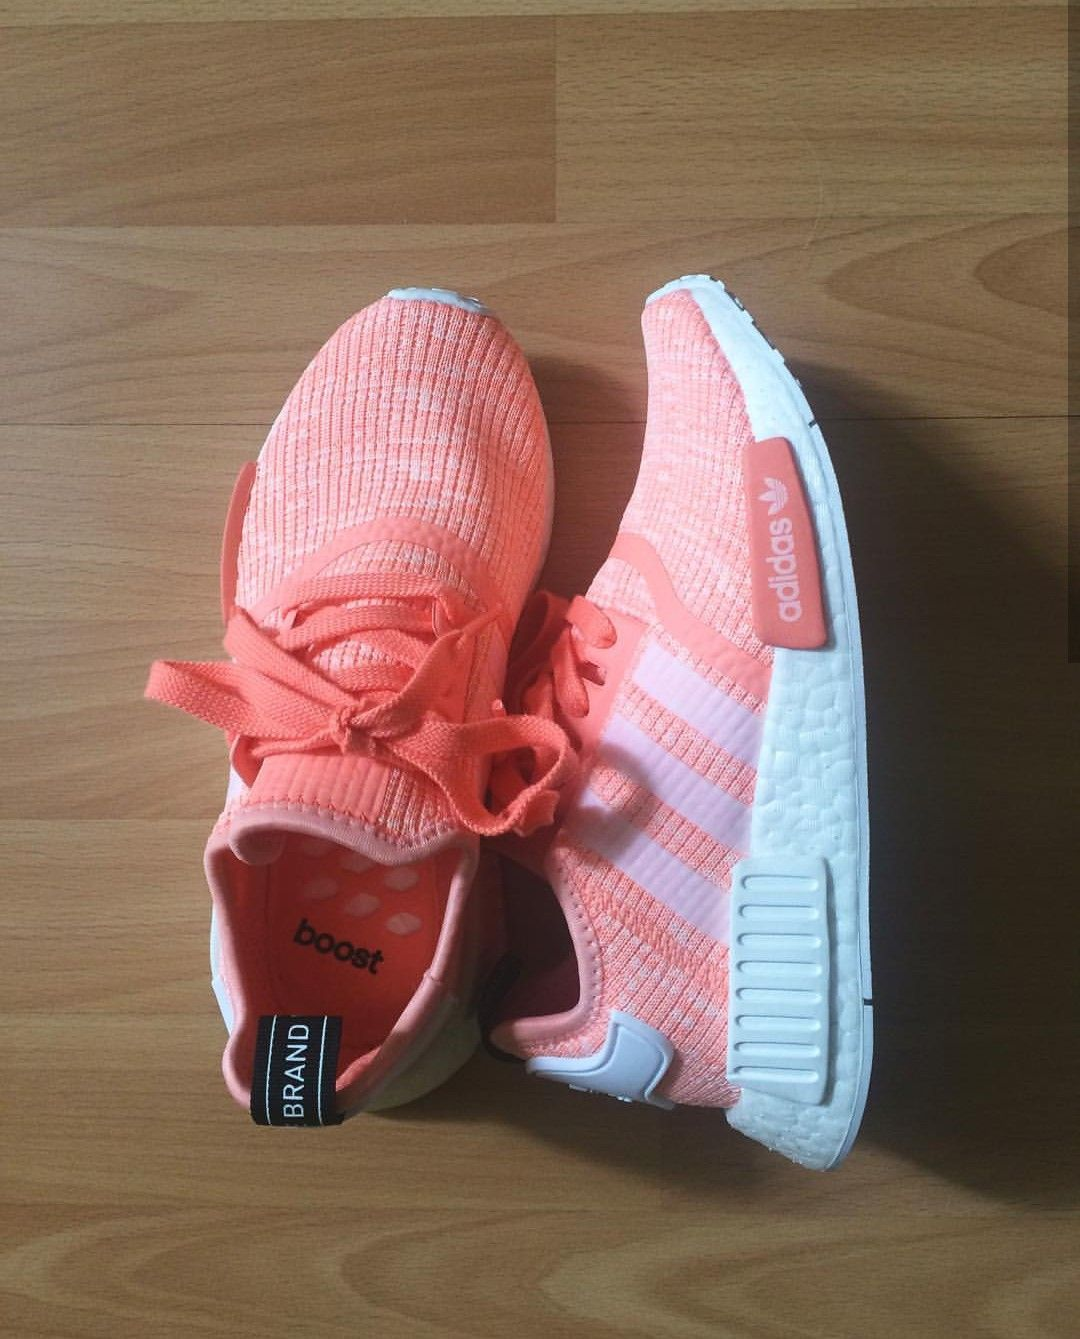 e98a8c23dbb1 Damen Sneaker ᐅ Onlineshop. adidas Originals NMD in lachs orange   Foto   kajka holiencikova  Instagram